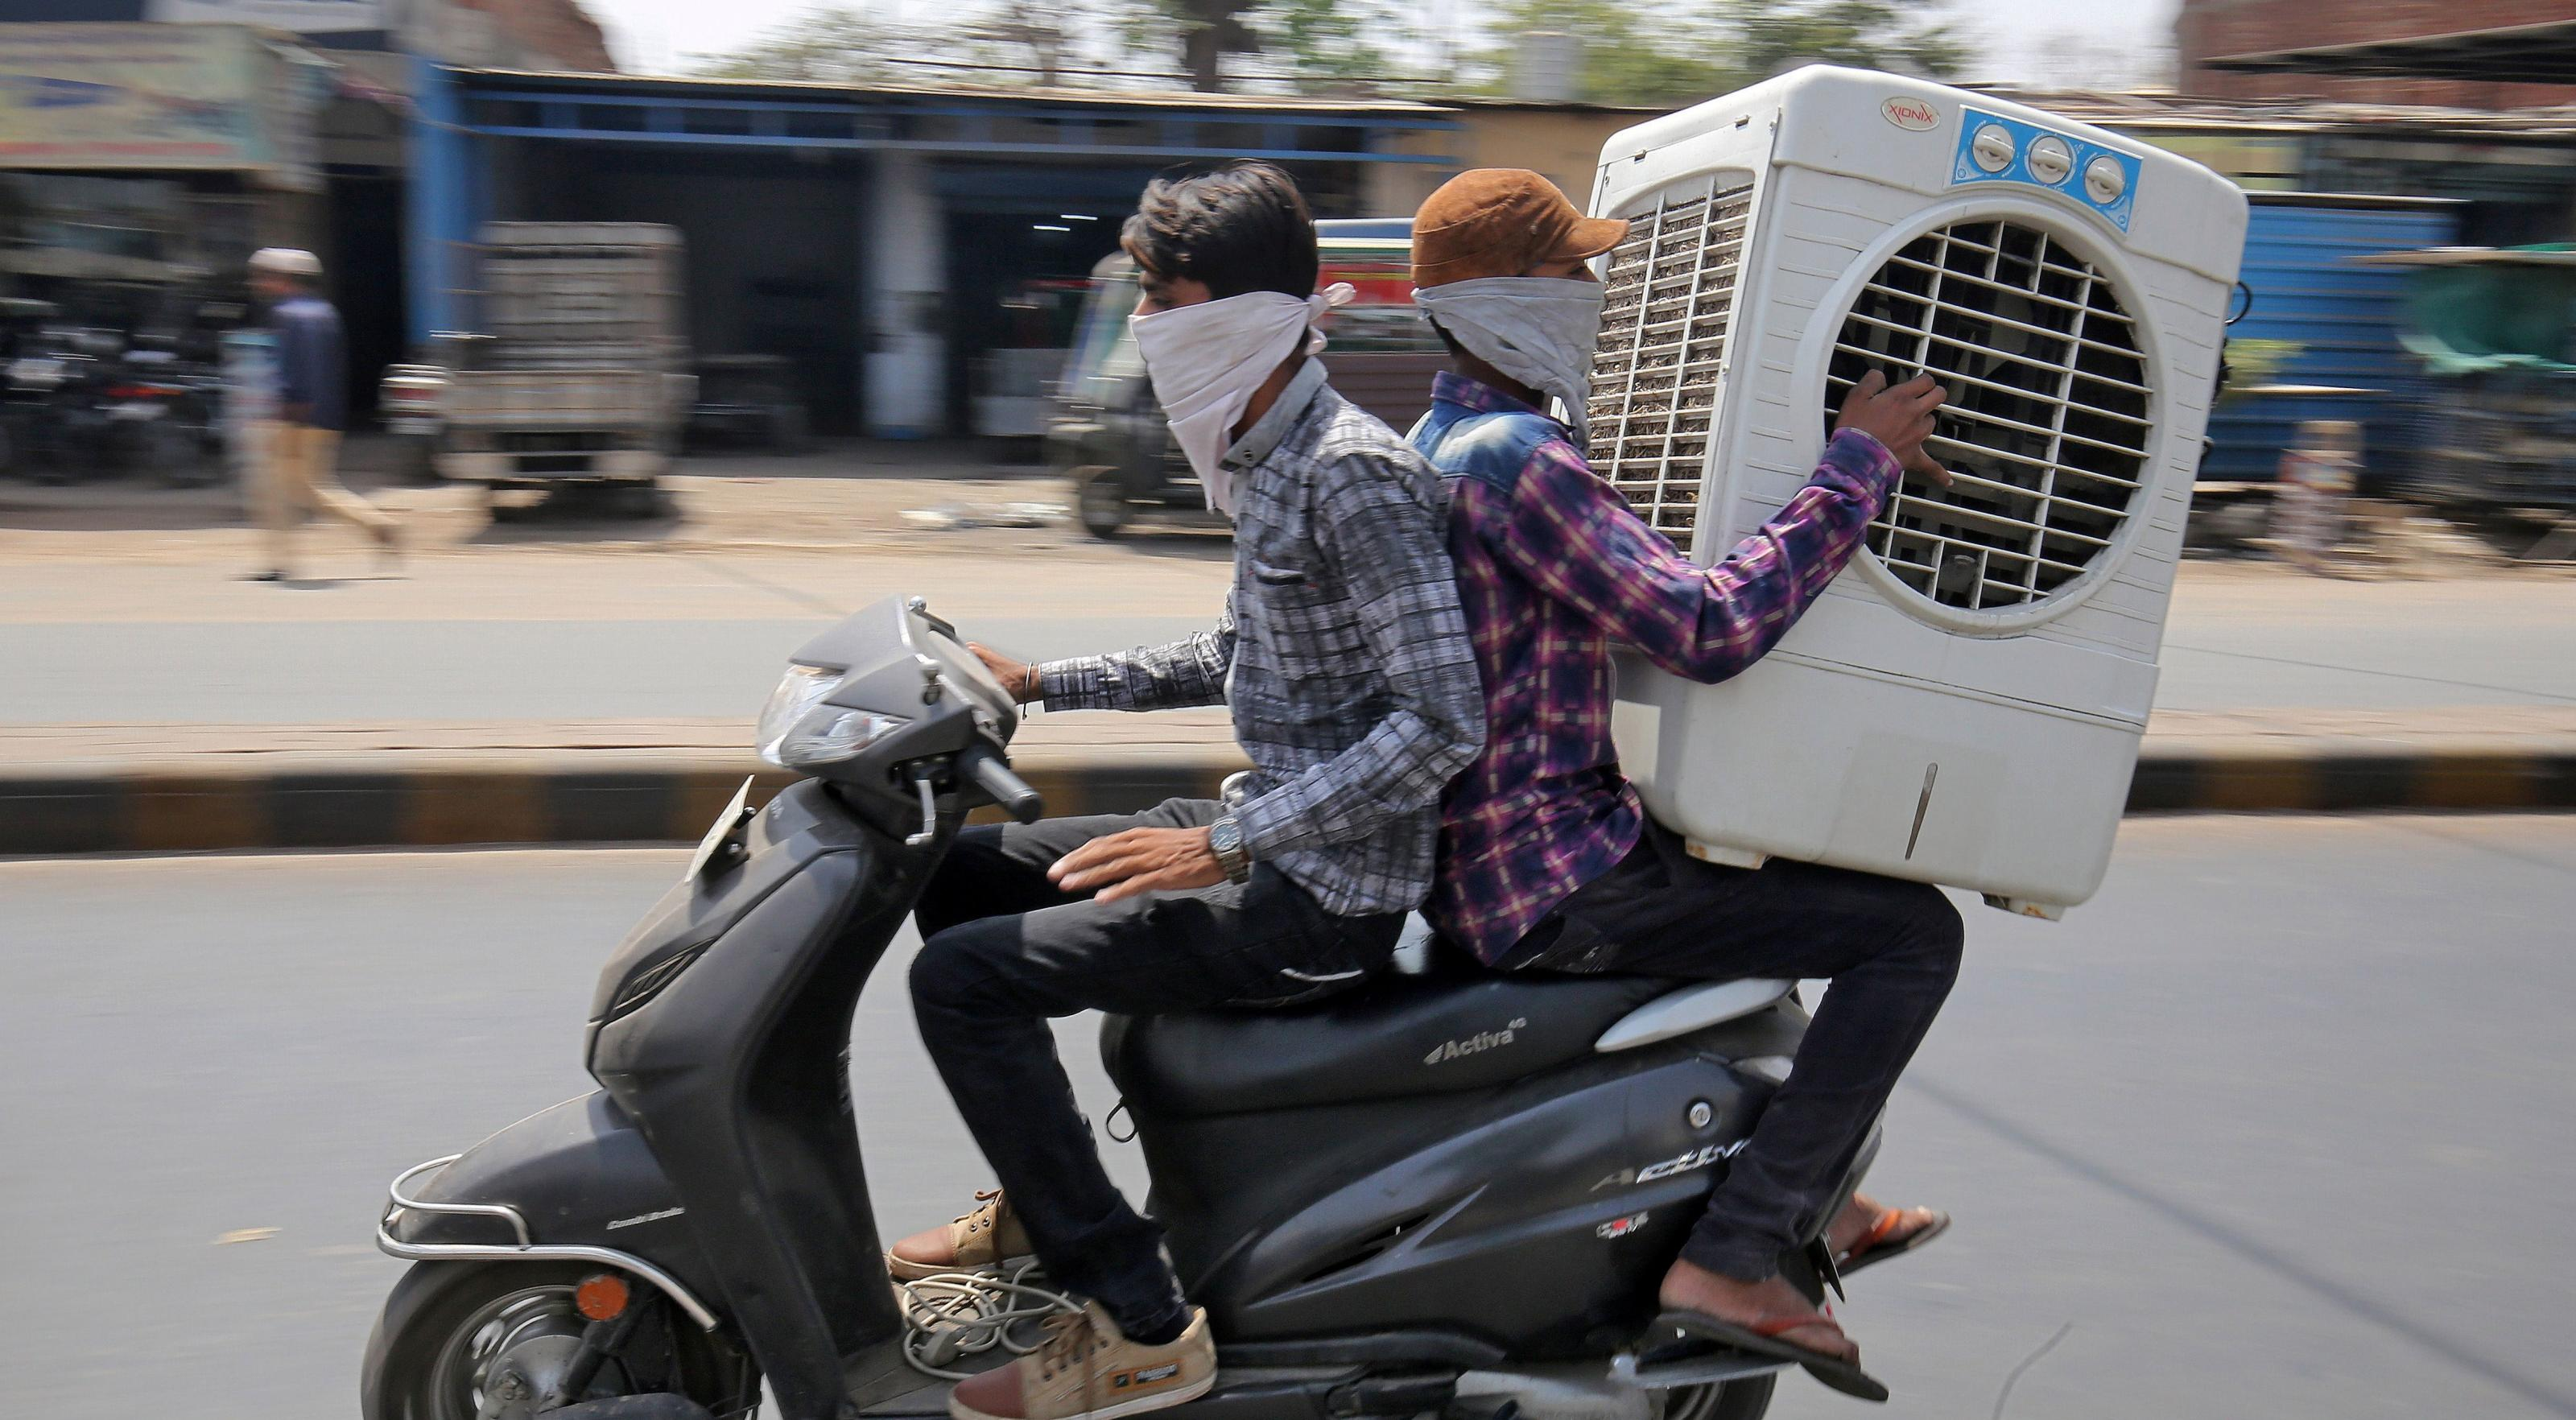 Indians to pay more for power as IMD predicts record temperatures